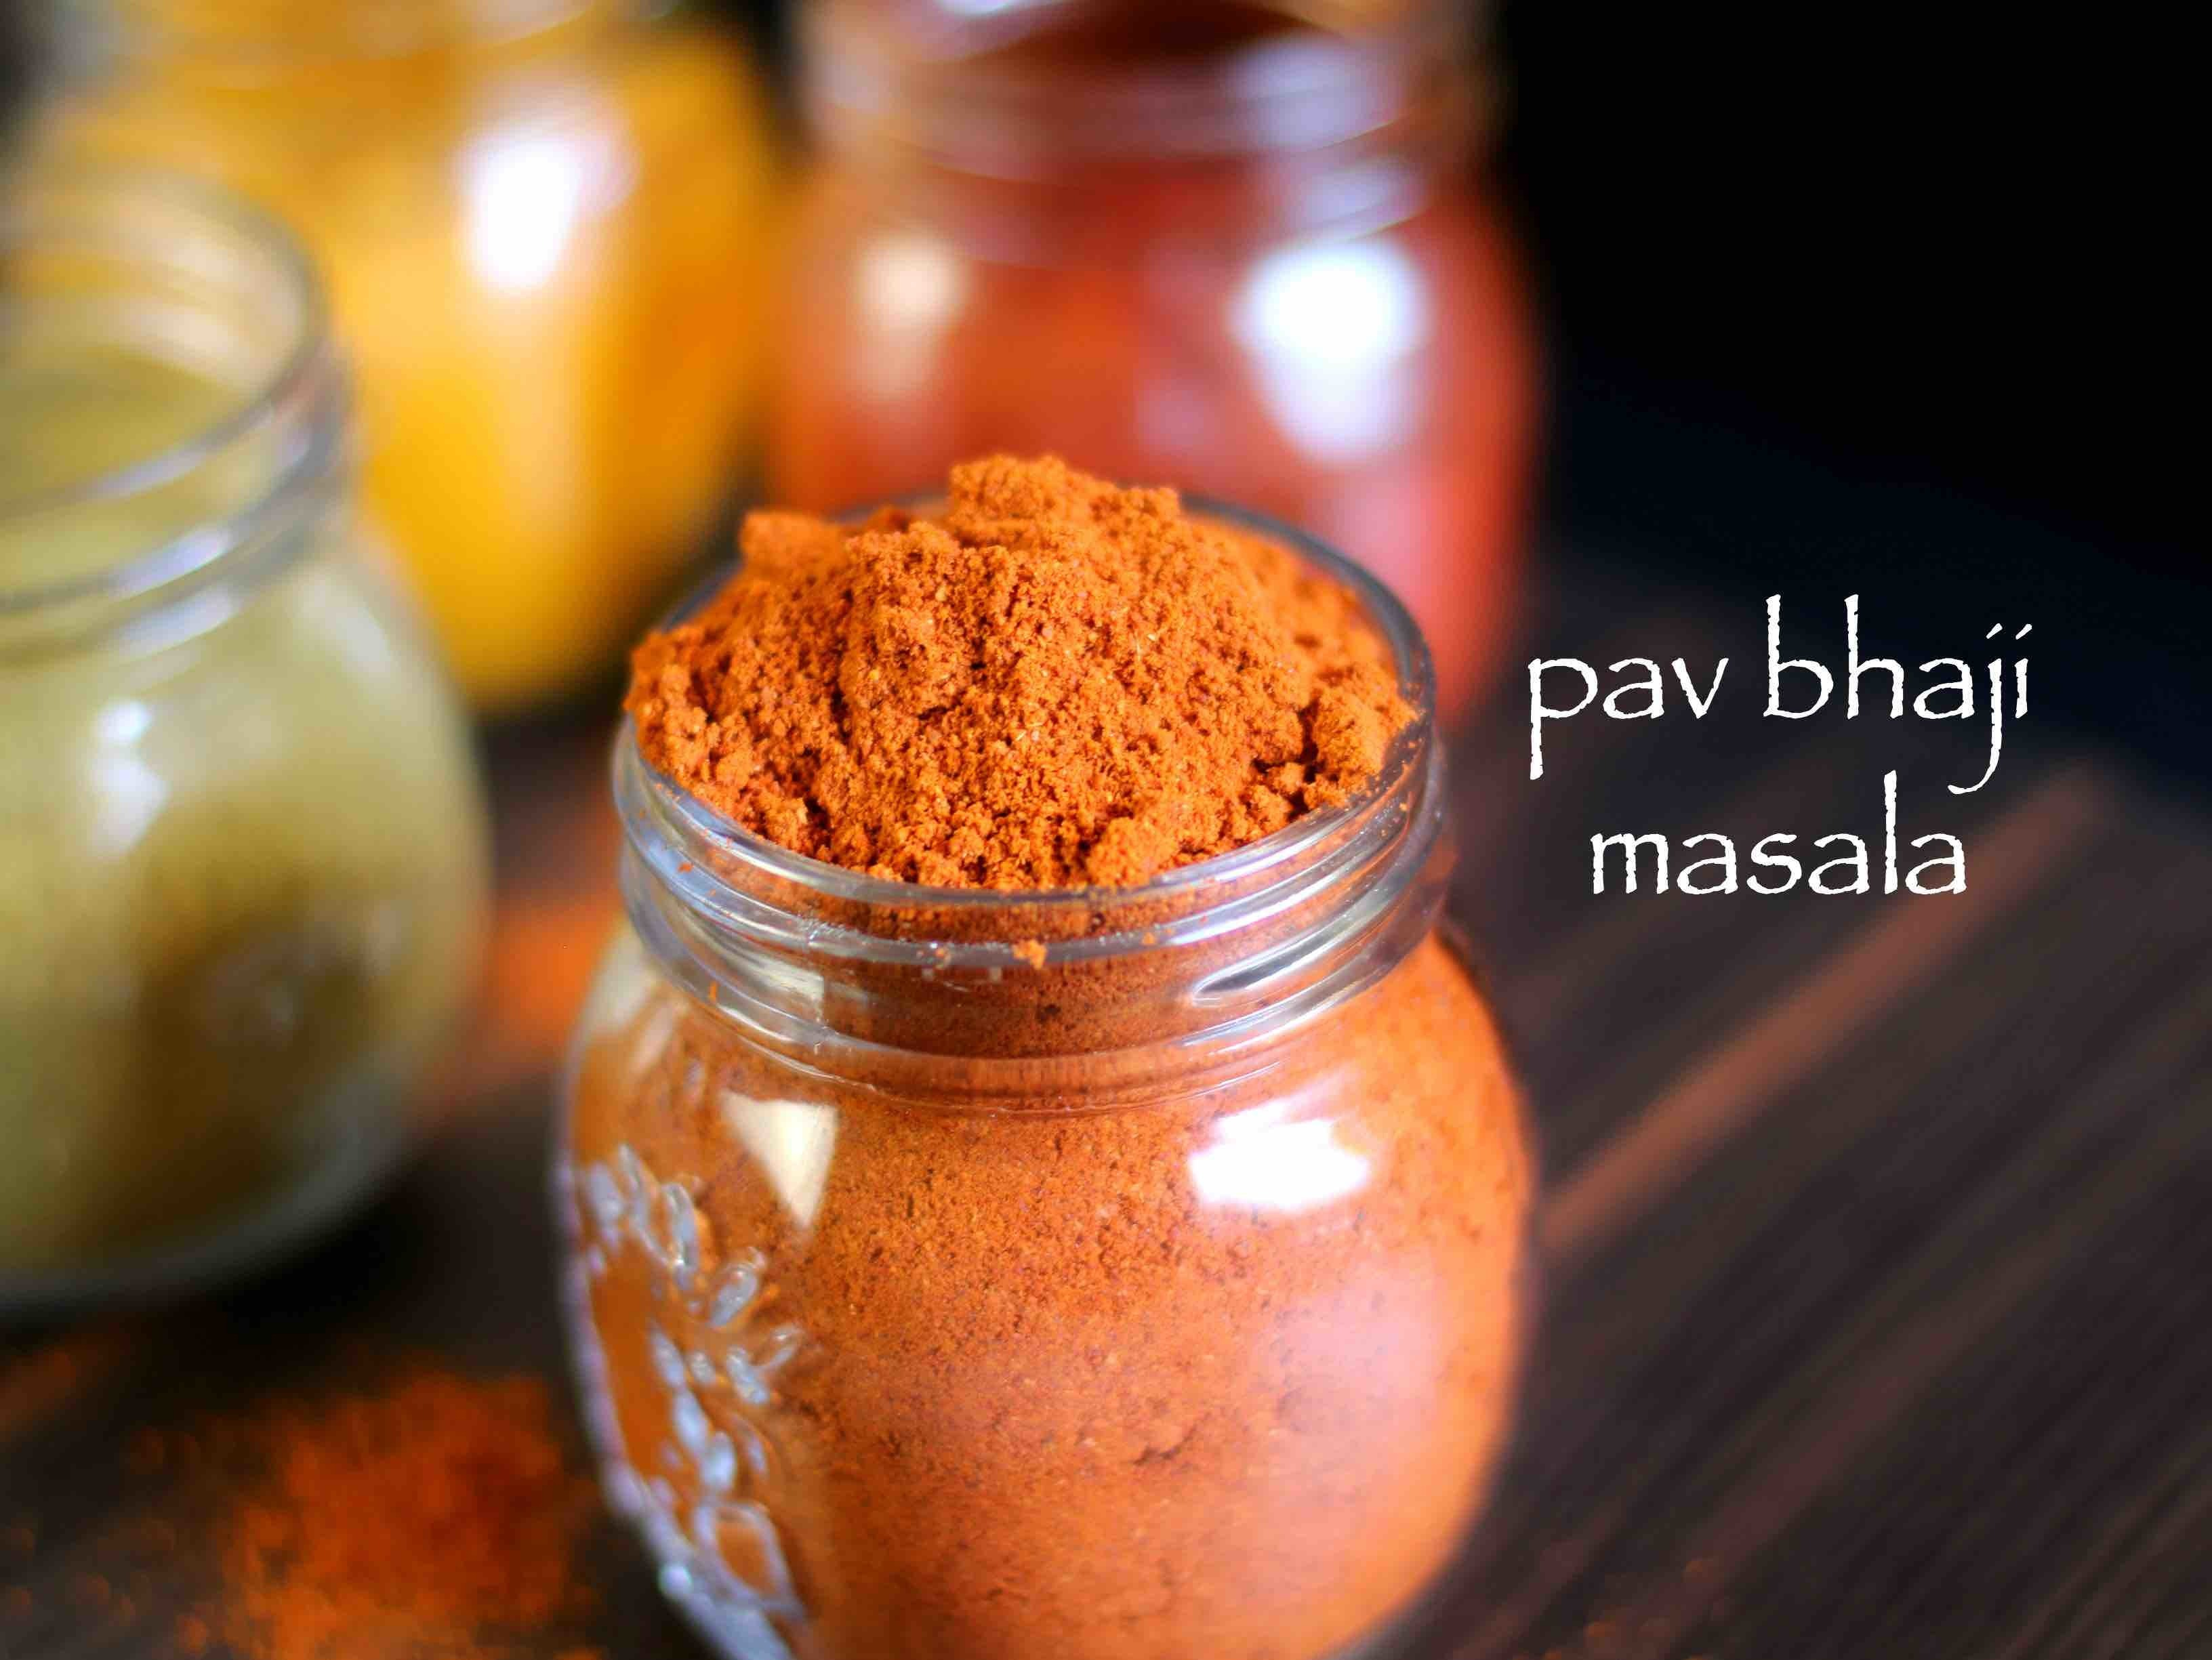 pav bhaji masala recipe | homemade pav bhaji masala powder recipe